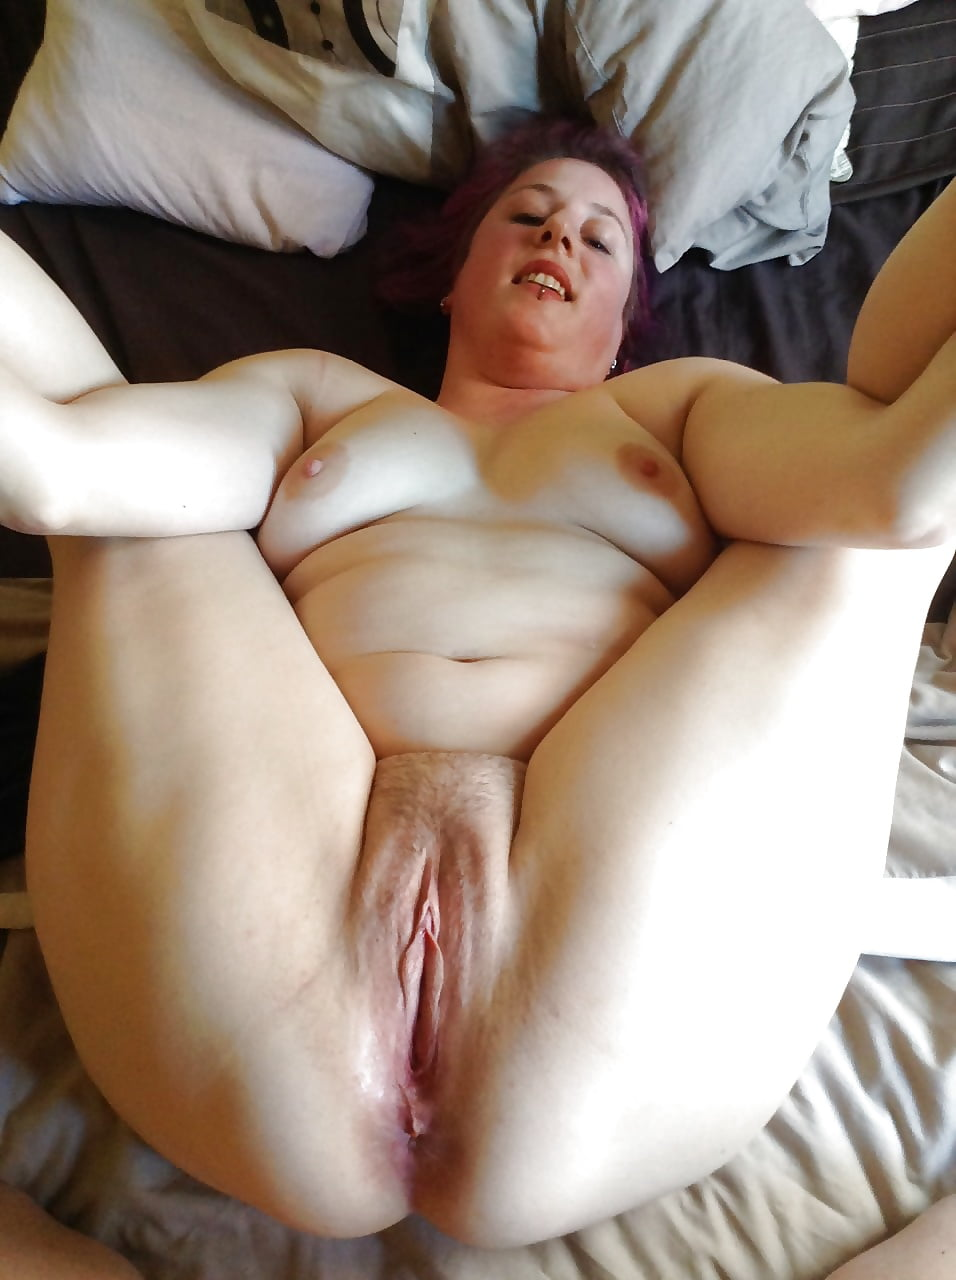 Pale plump wide open wife pussy, homemade cumshot collection